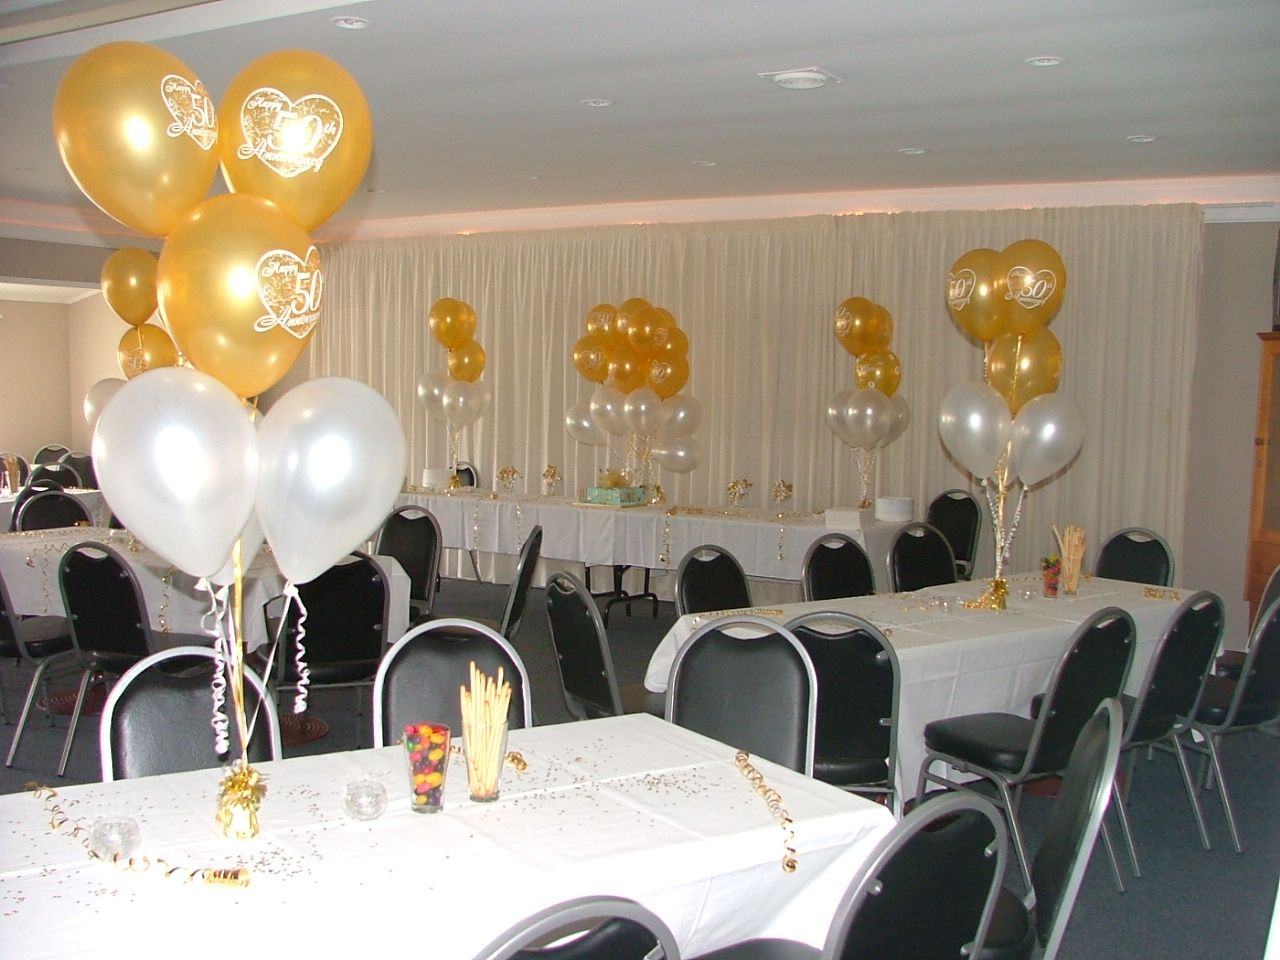 party ideas 50th anniversary 50th wedding anniversary 50th Anniversary Table Decorations with the rolo s in a vase